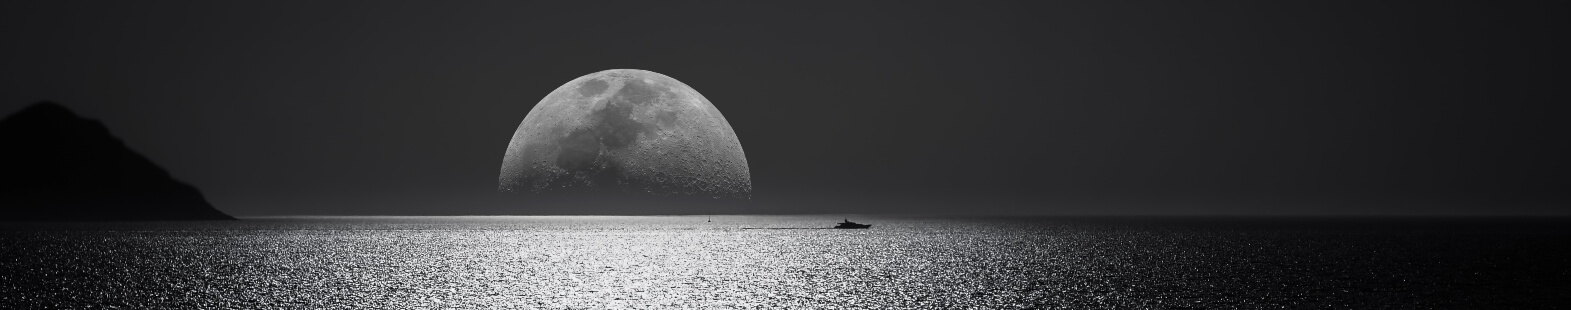 Banner image for The Lunar Atmosphere article by Paul Godin and all. Image shows a moon setting on the ocean, black and white image.